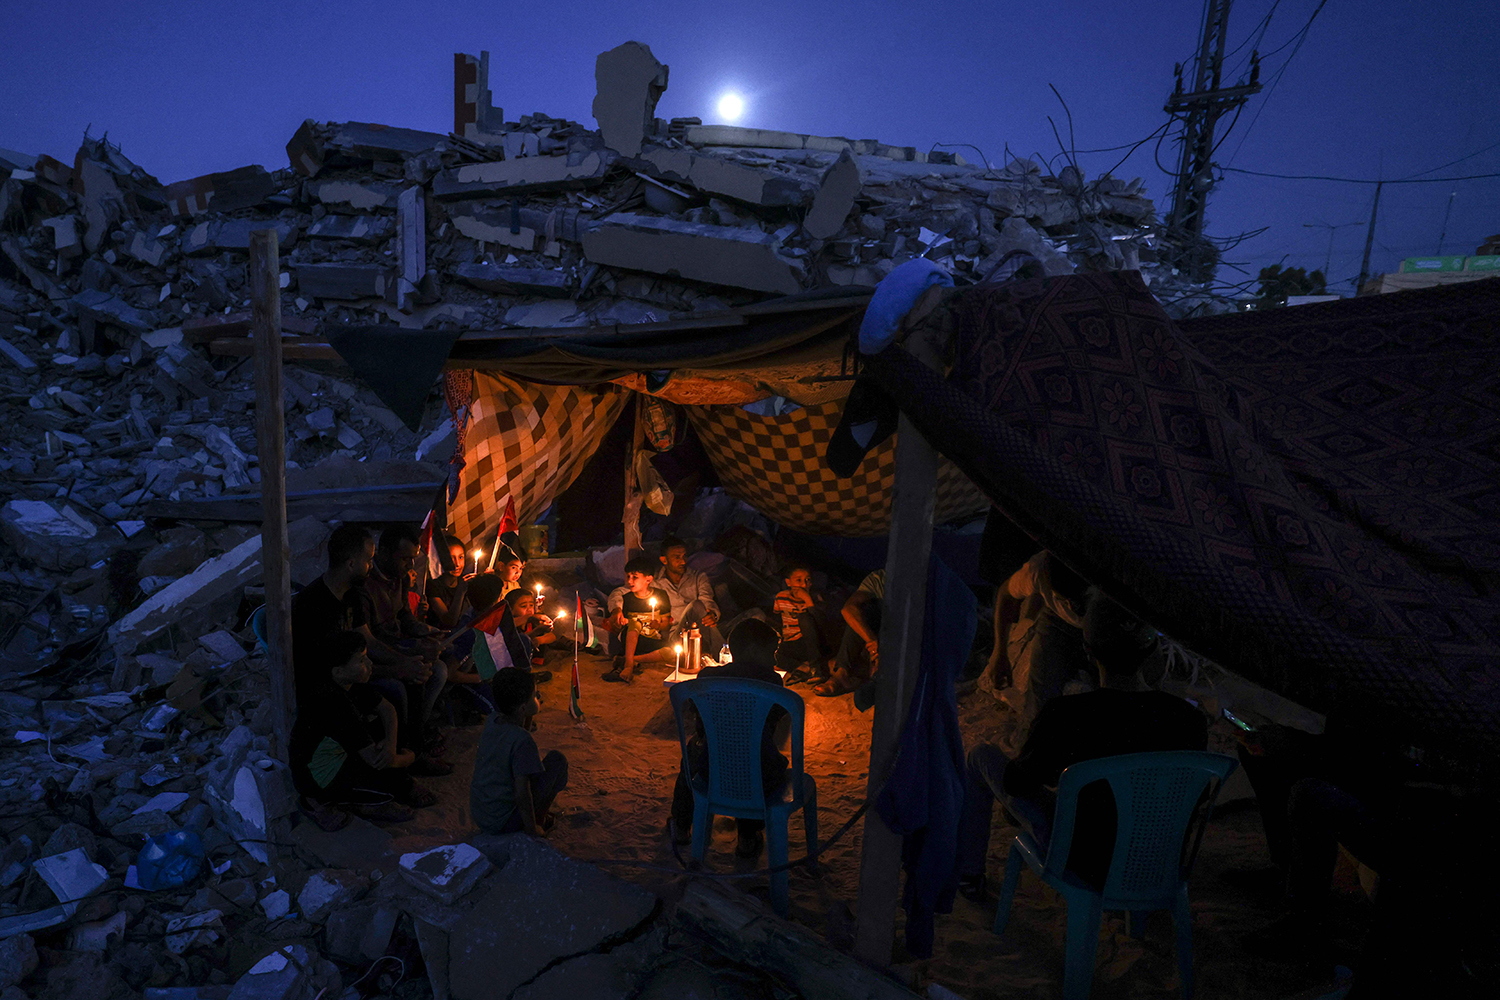 Palestinians sit in a tent